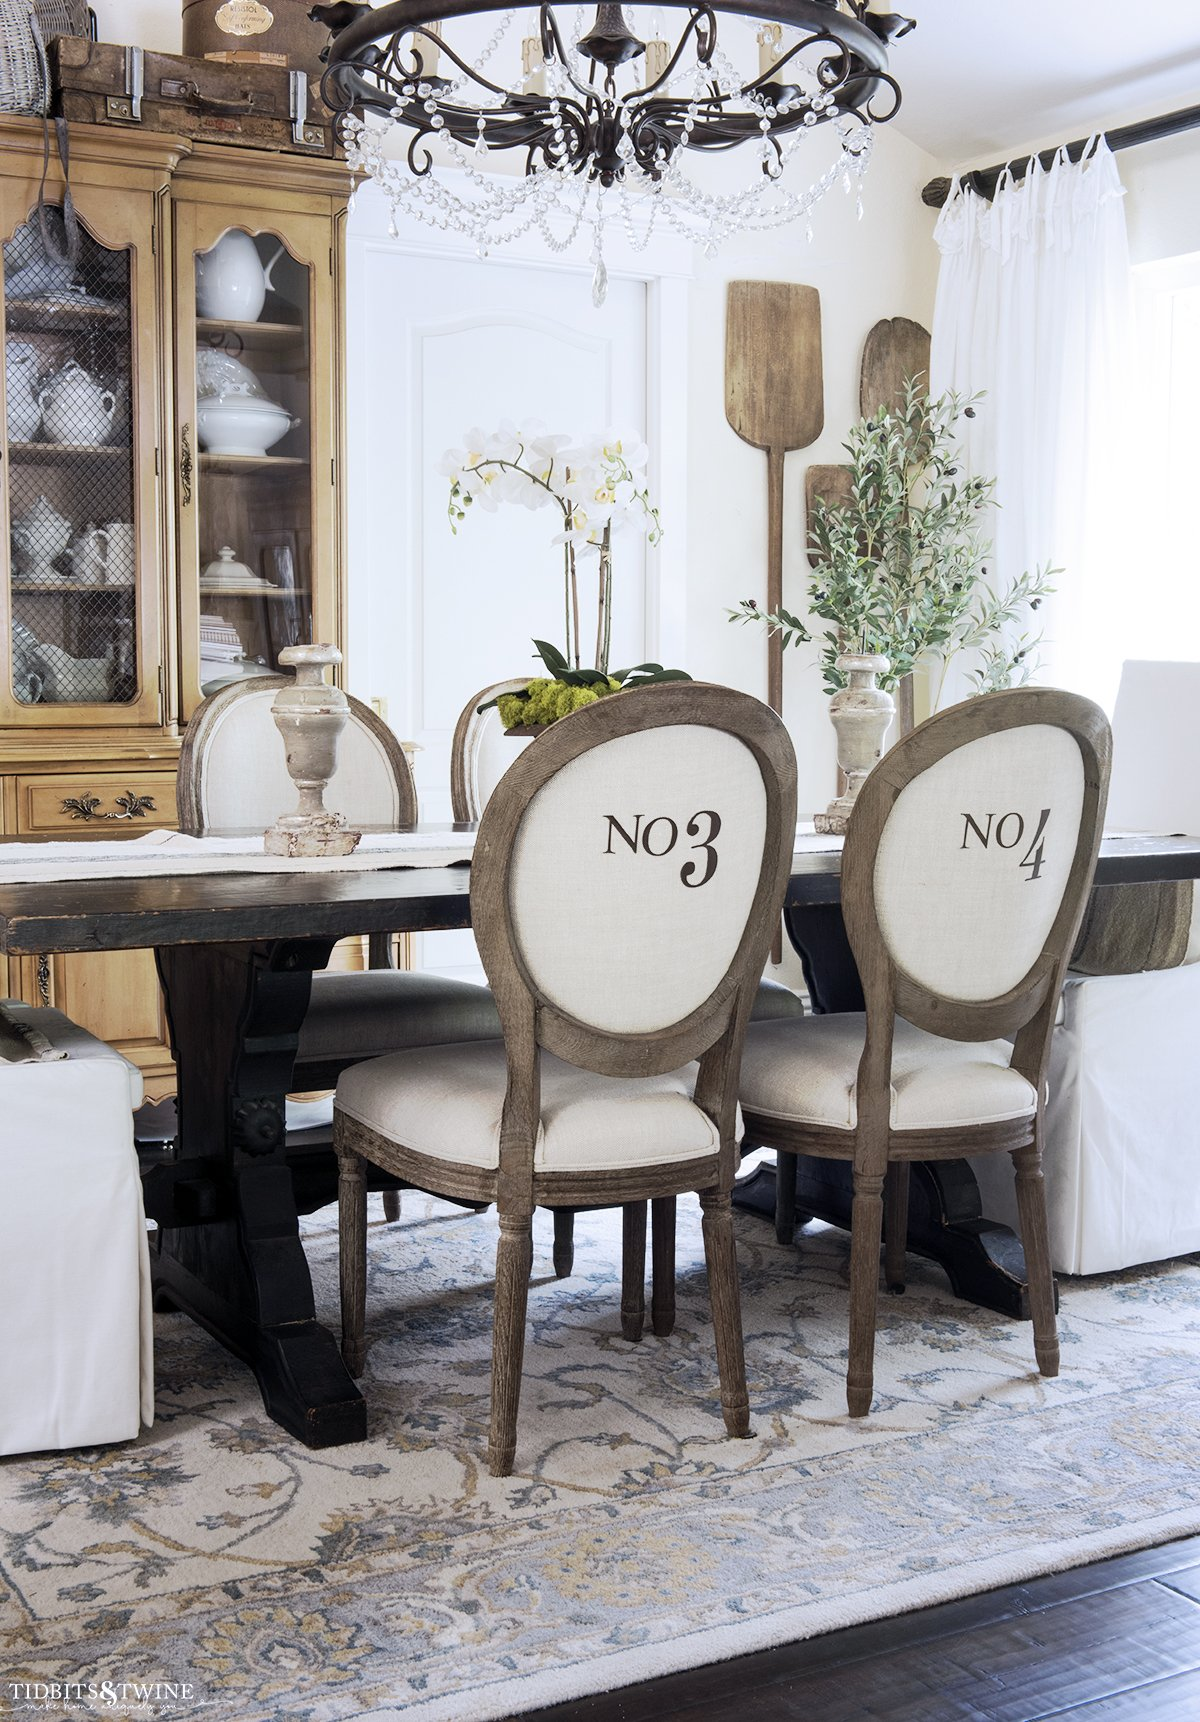 french style dining room with linen and wood chairs with numbers on the back and french hutch containing antique ironstone collection